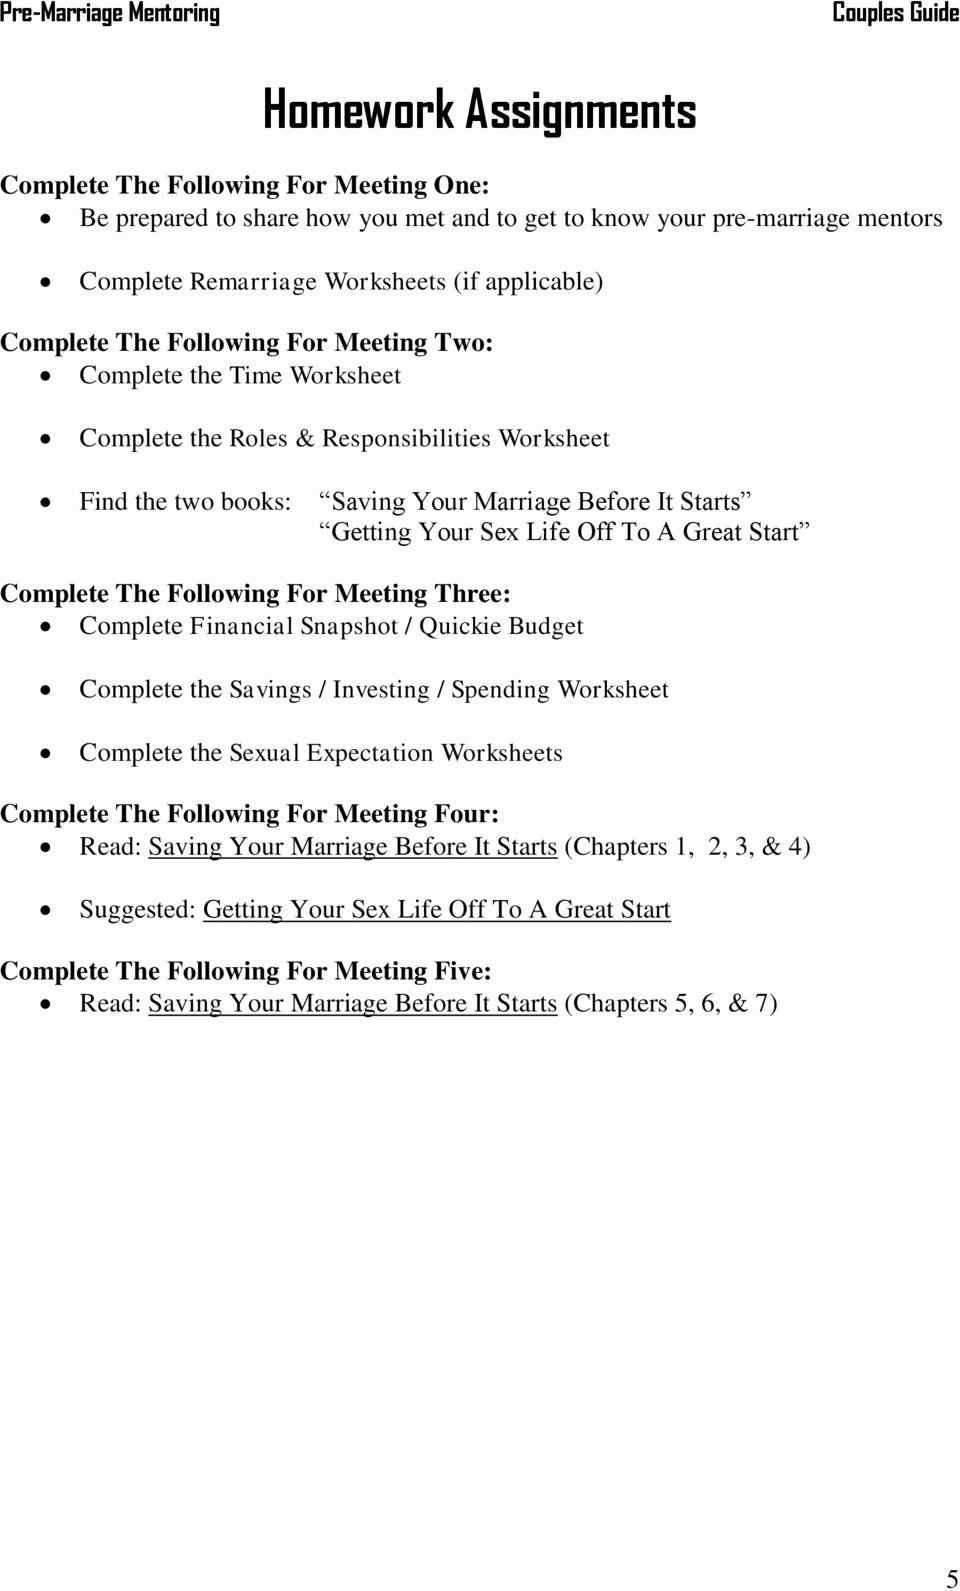 Saving and Investing Worksheet Luxury Pre Marriage Mentoring Couples Guide A Ministry Of